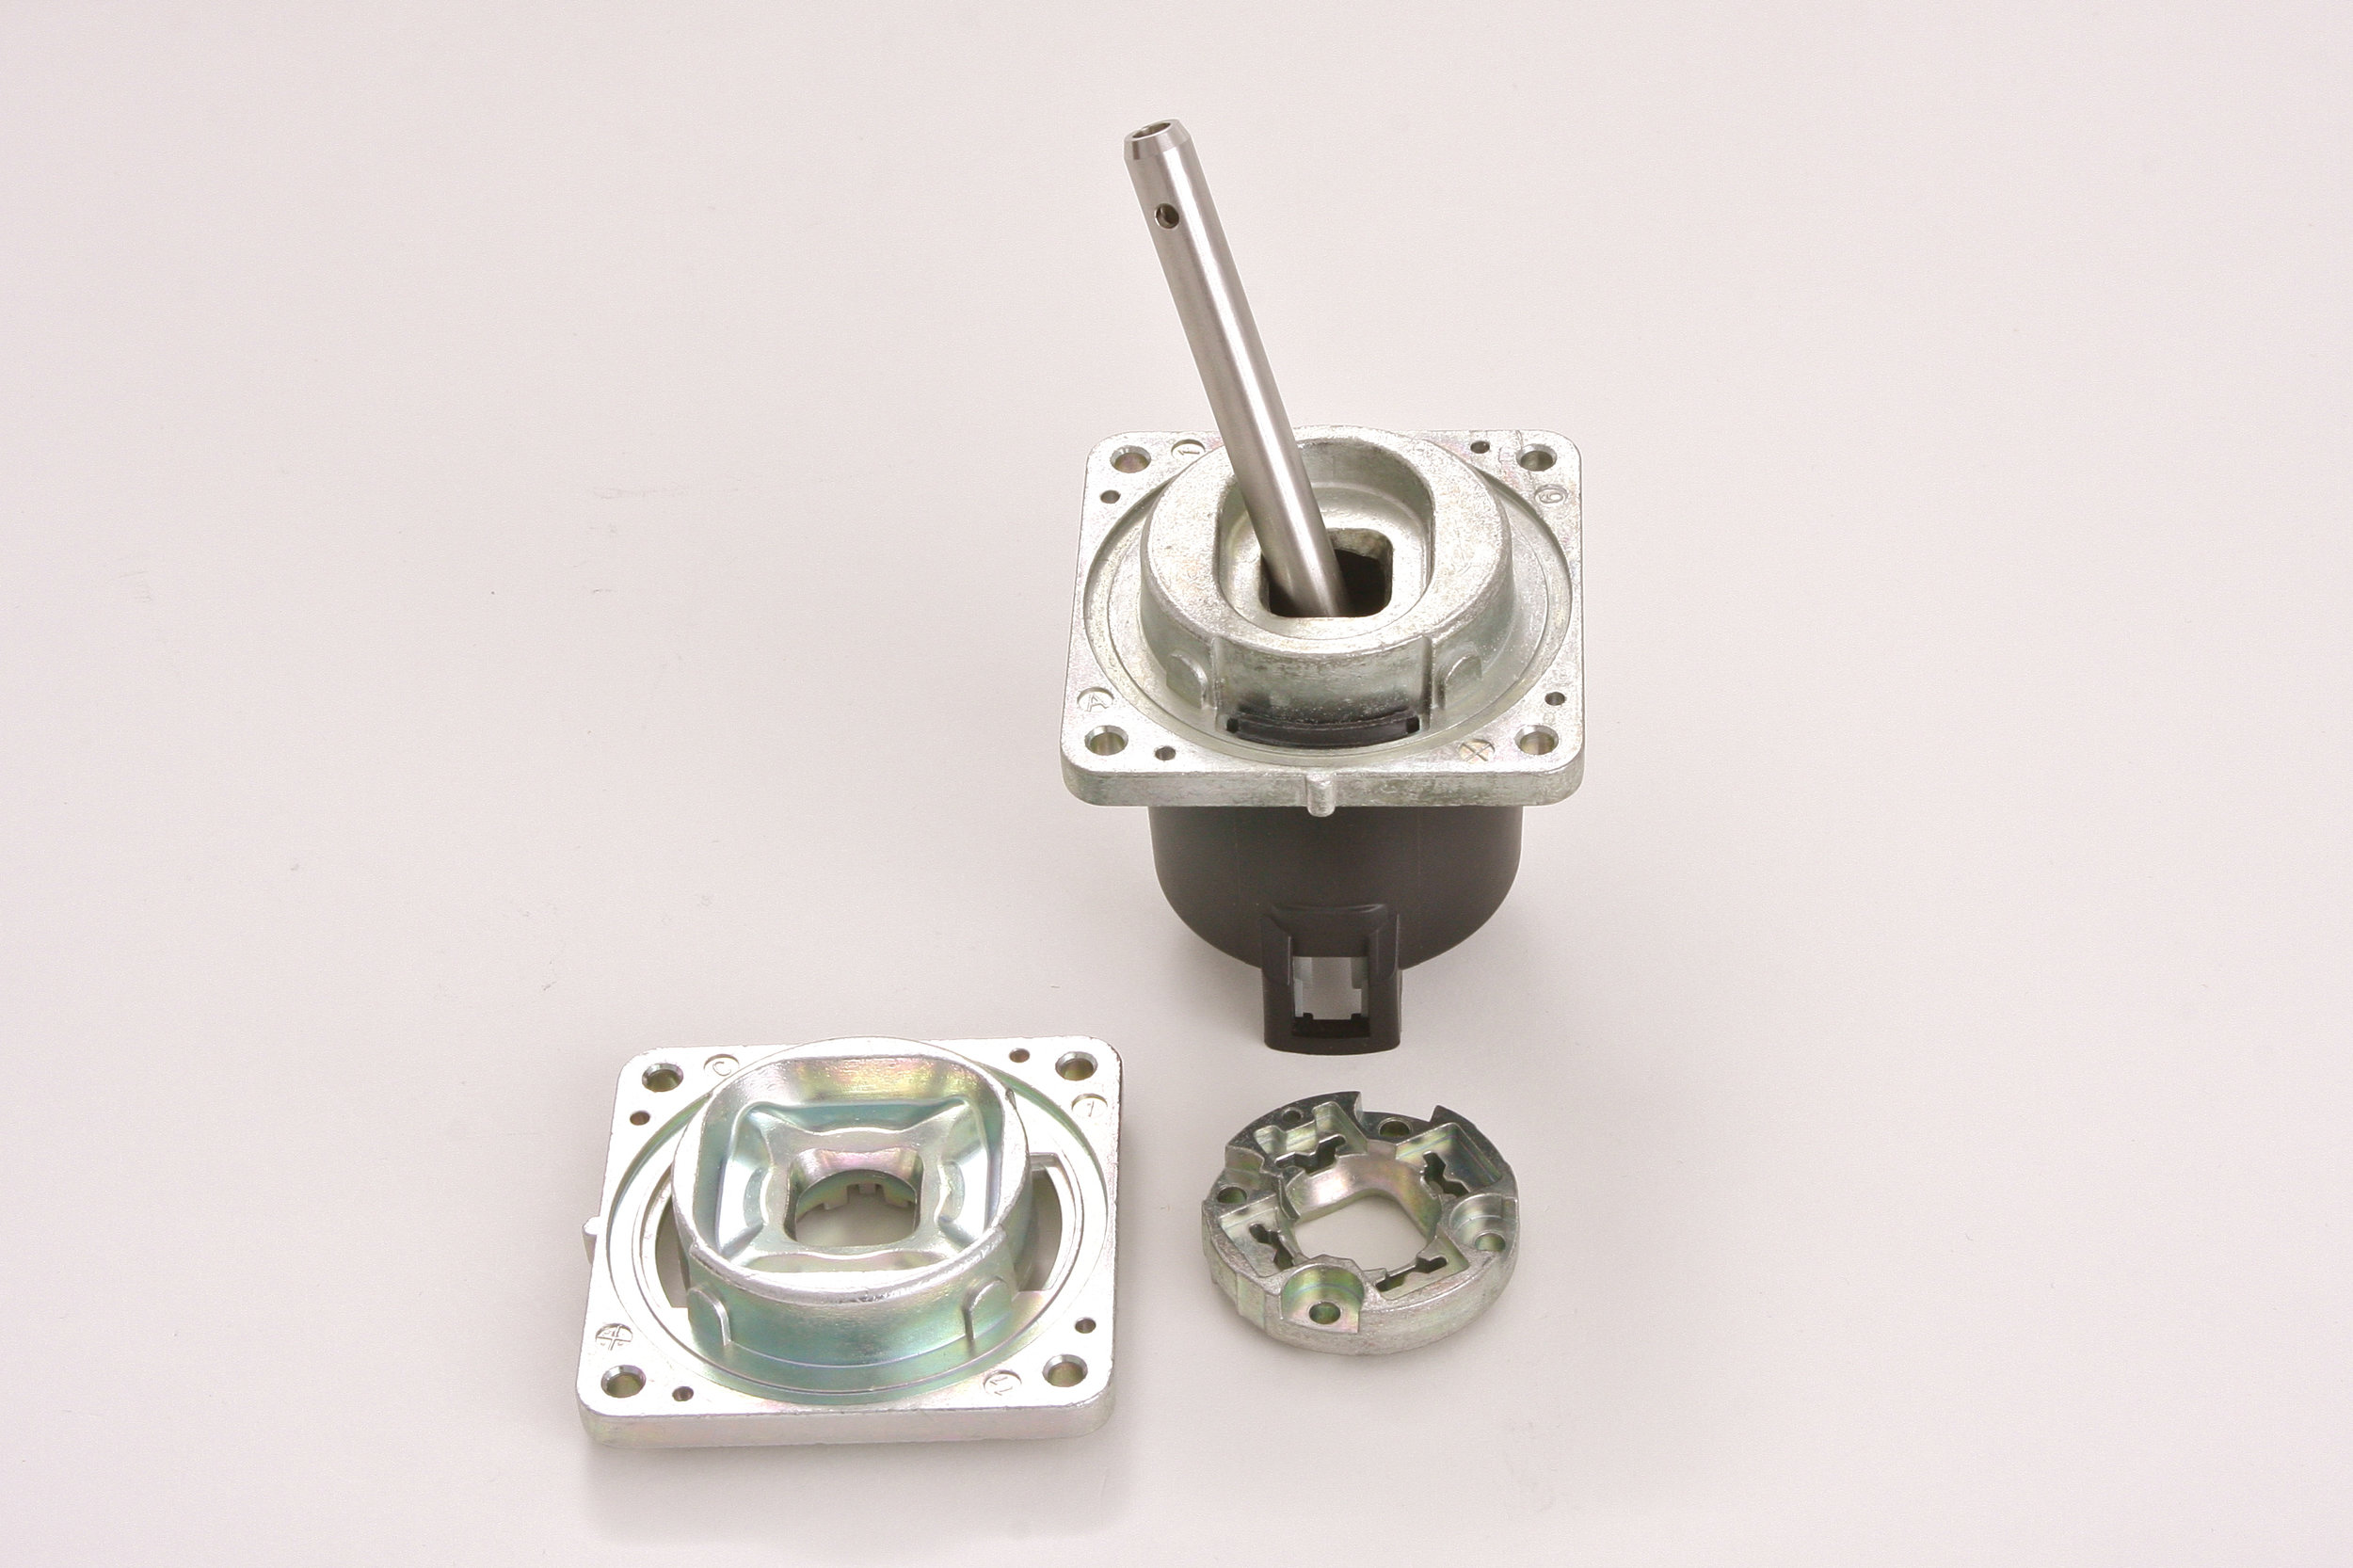 Zinc Castings vs screw machine products - Zinc die casting produces features that are difficult or impossible from bar or tubular stock, while maintaining tolerances without tooling adjustments, with fewer operations, and less scrap.